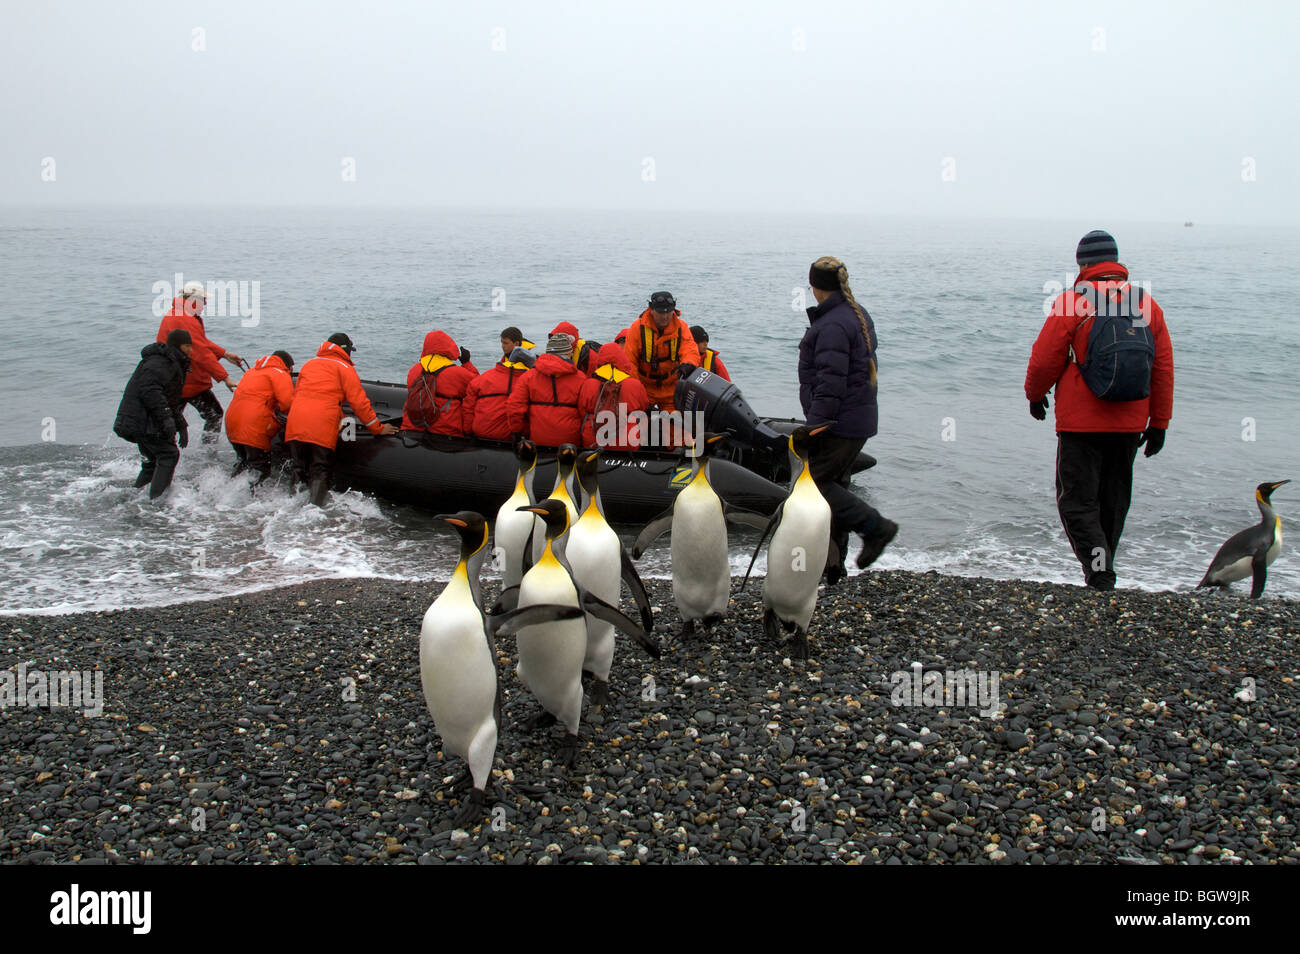 Visiting Salisbury Plain, South Georgia Island. King penguins on beach. - Stock Image